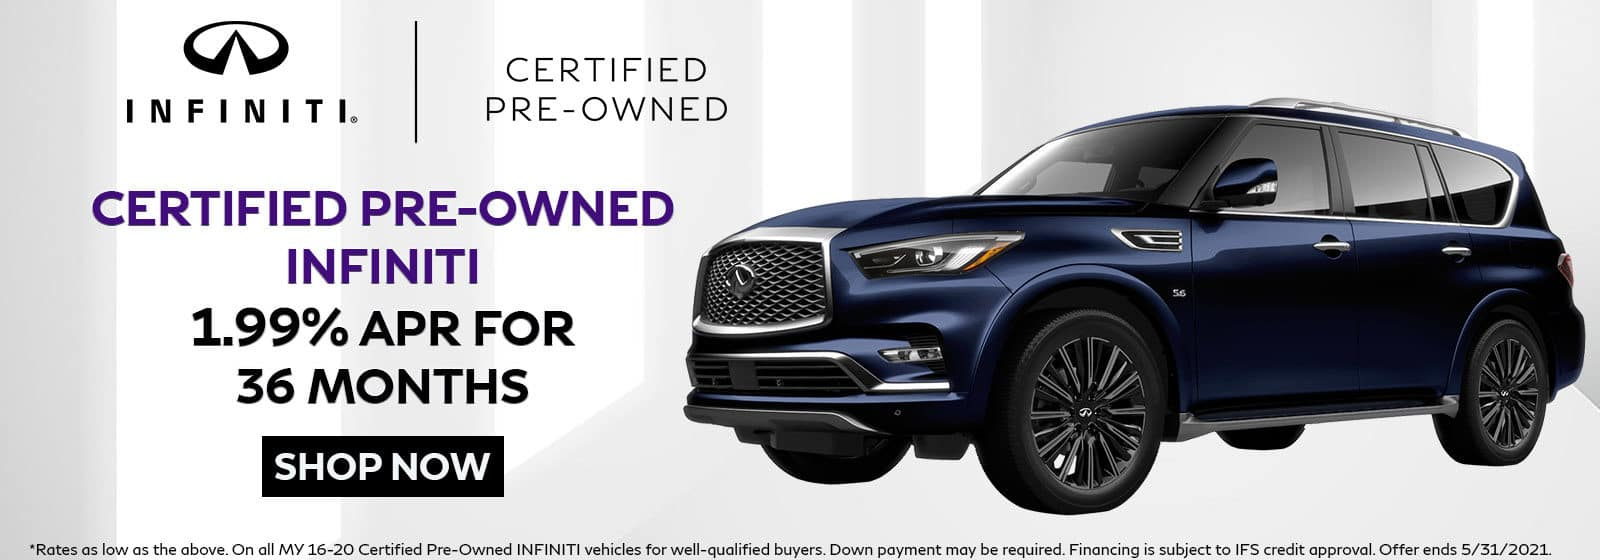 Certified Pre-Owned INFINITI Offer